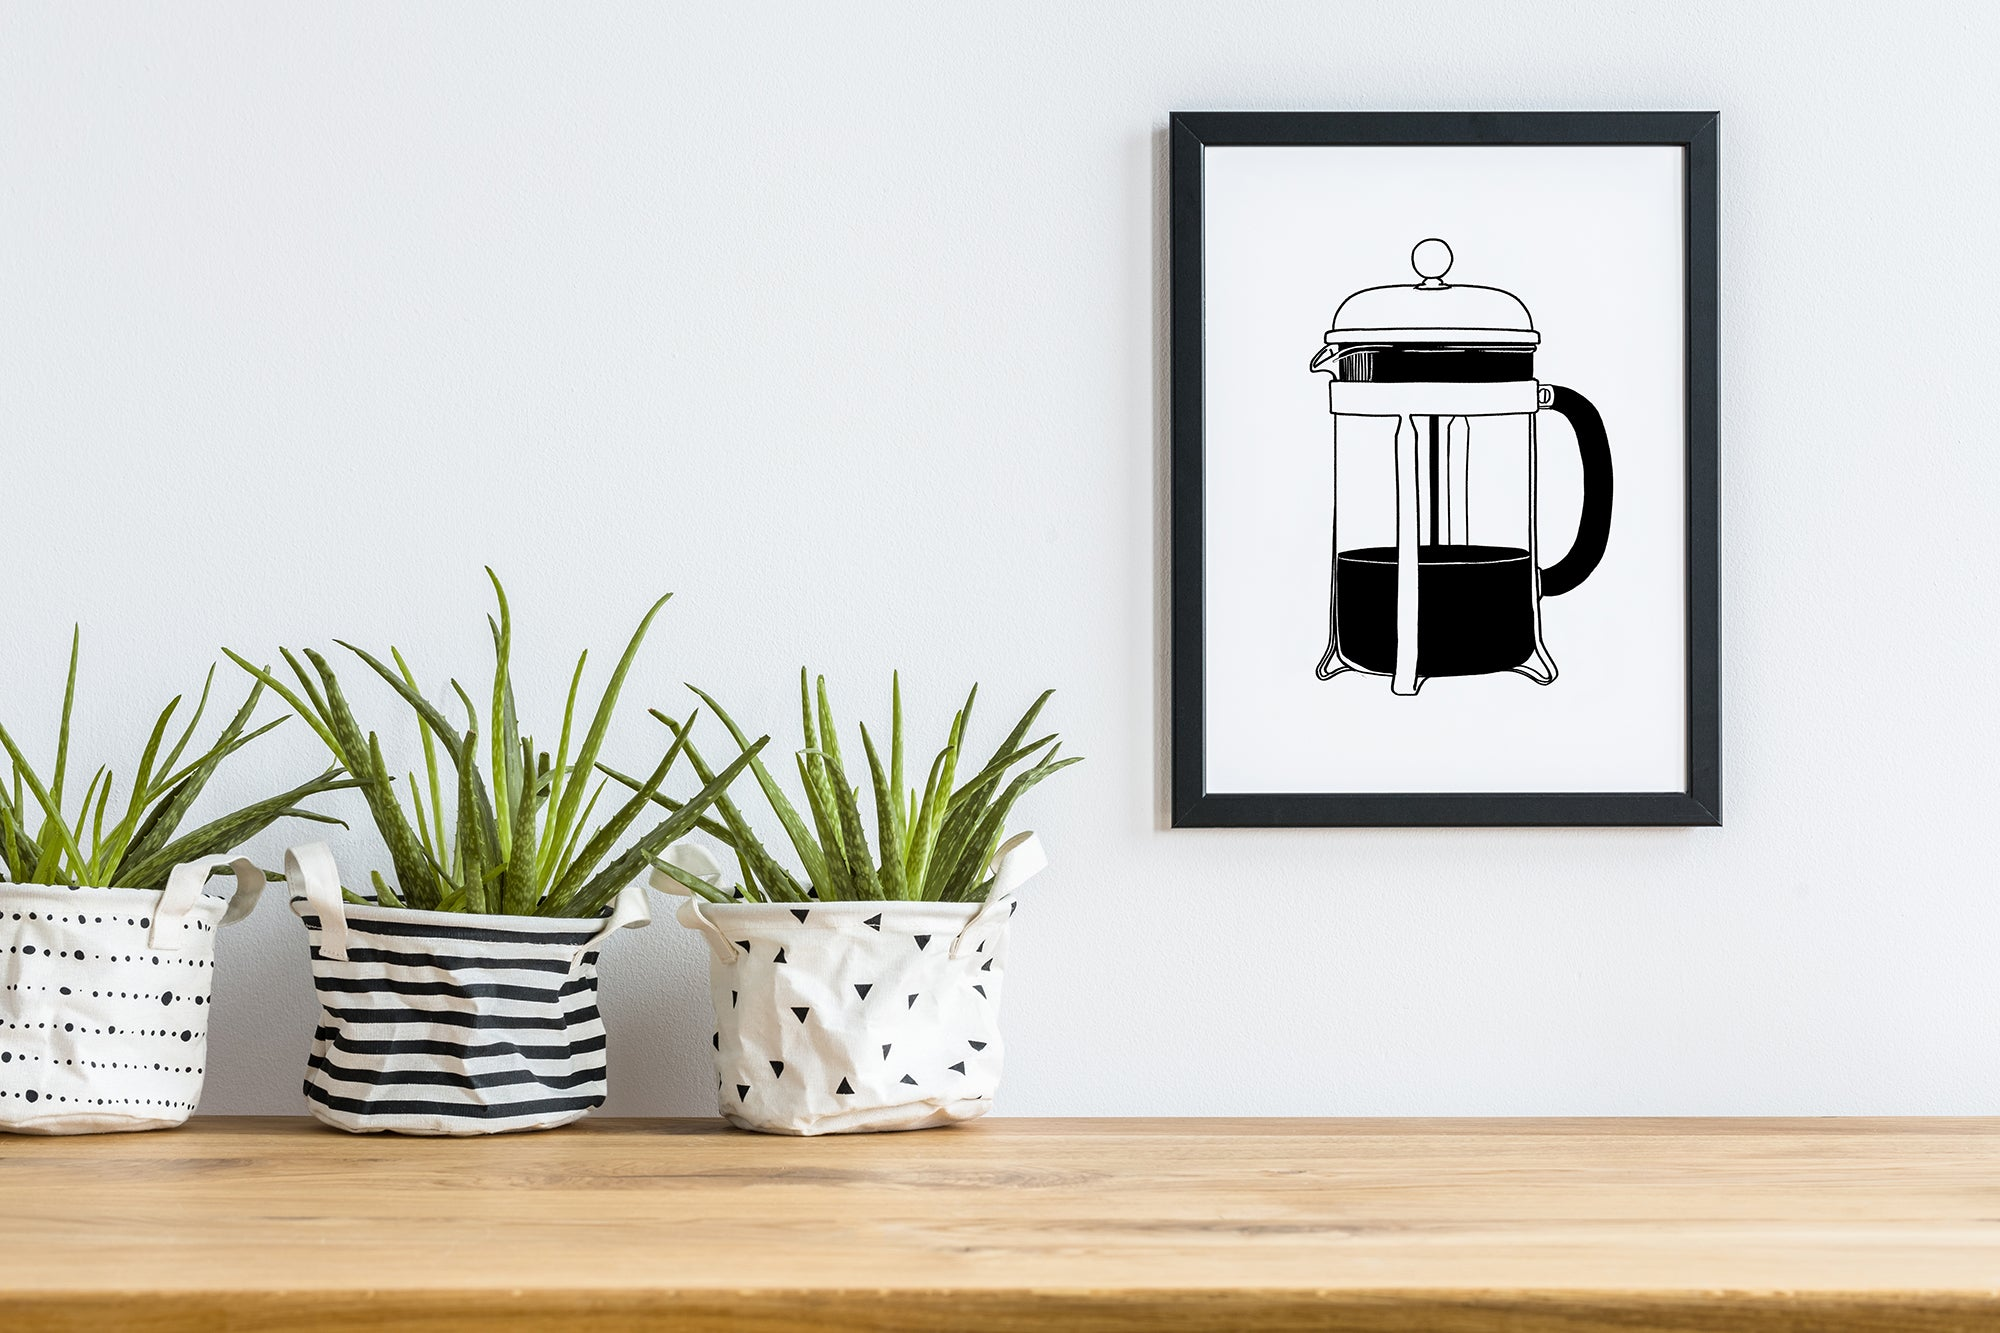 french press coffee maker illustration print wall decor